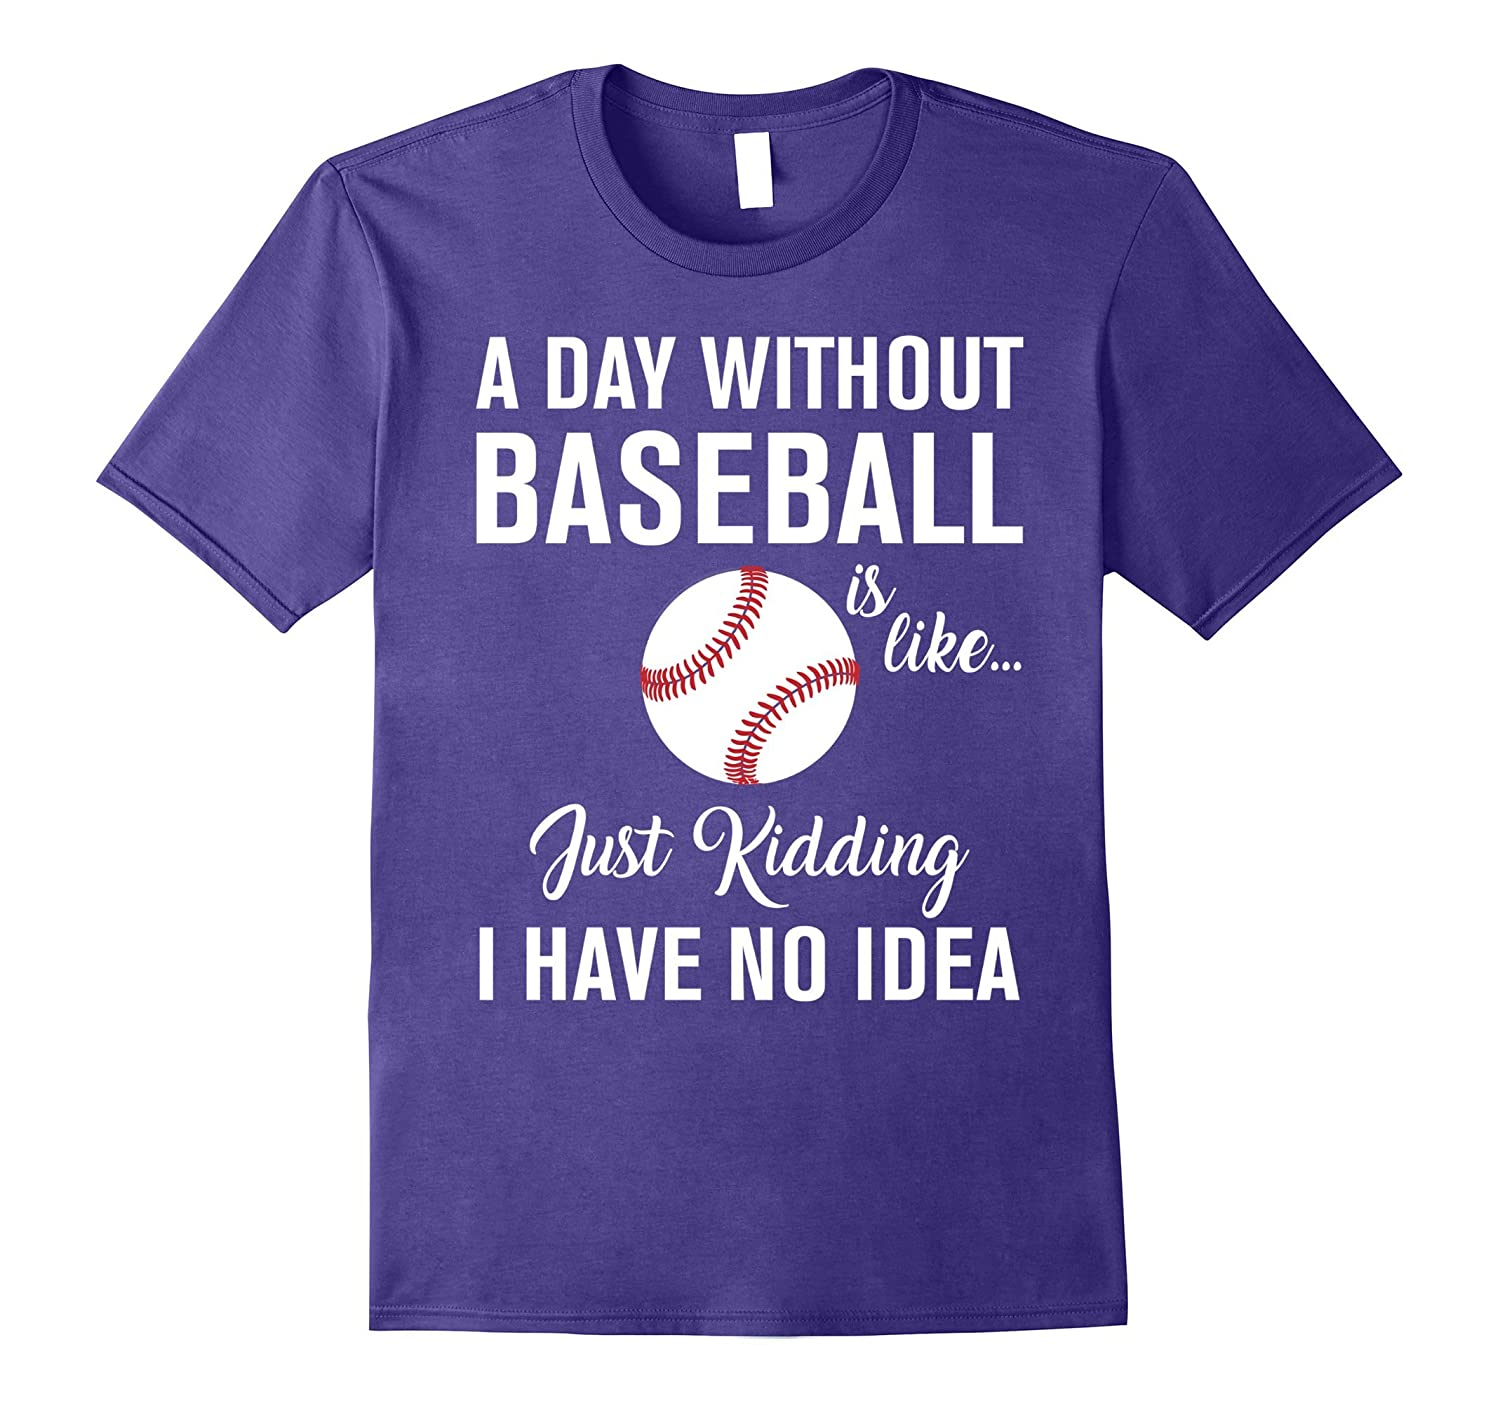 A DAY WITHOUT BASEBALL IS LIKE T-Shirt I HAVE NO IDEA-BN